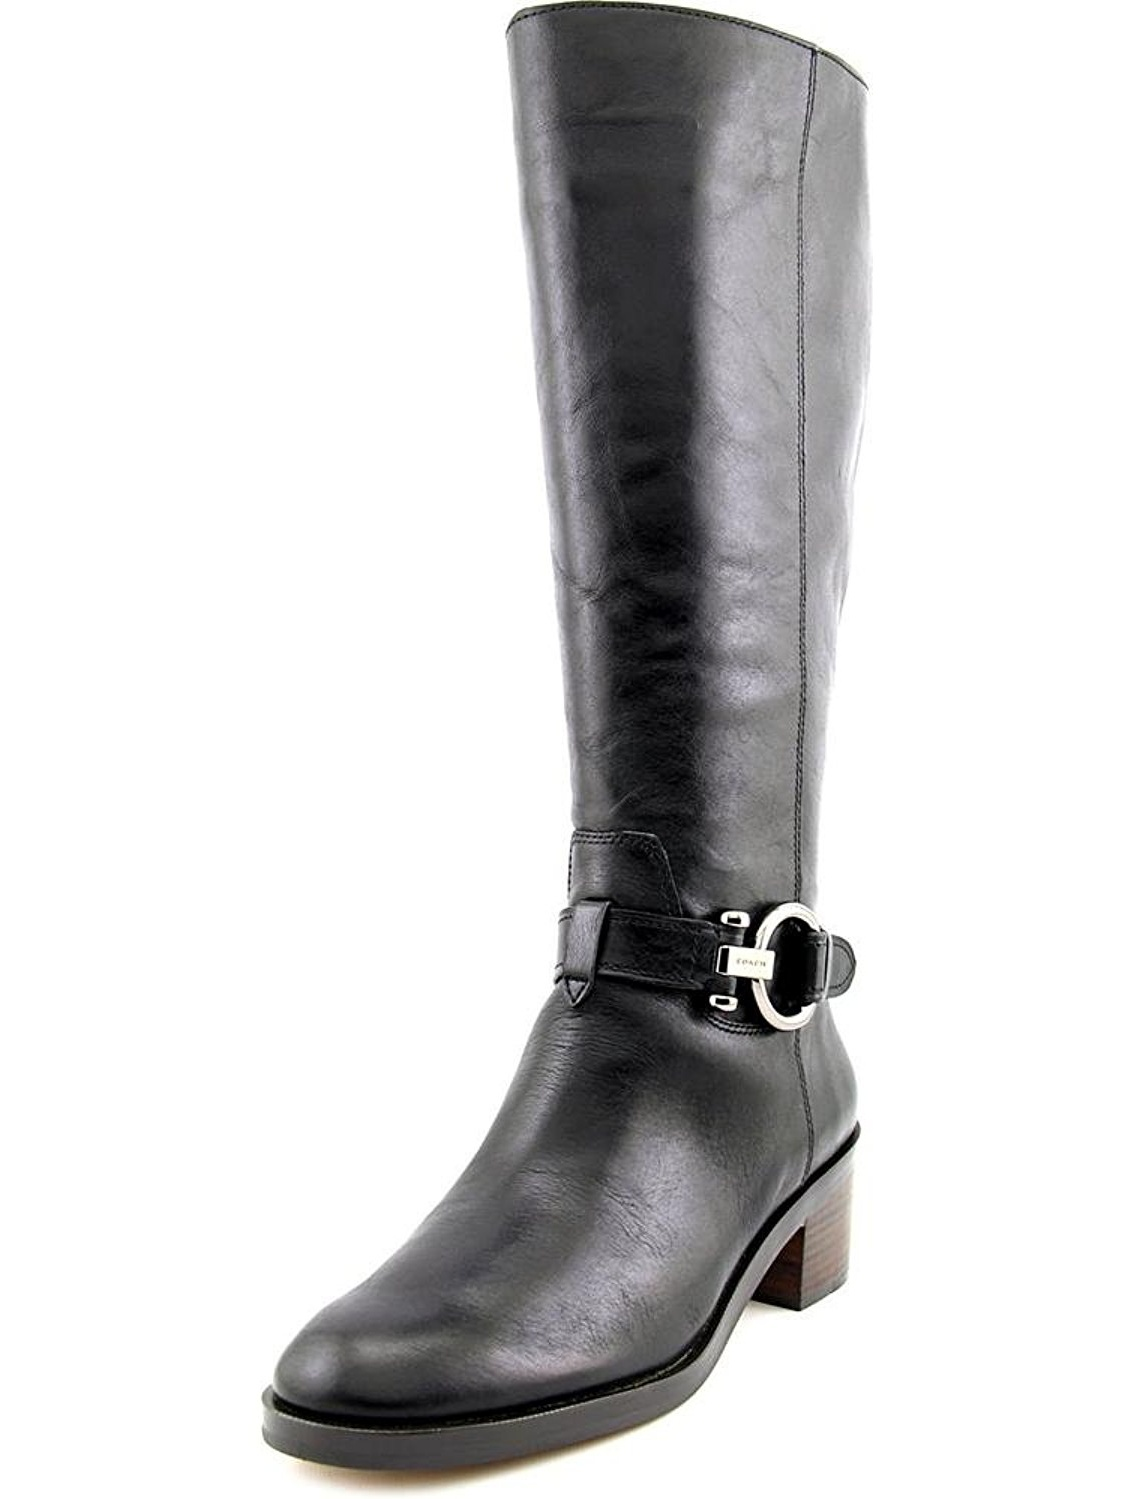 Coach Carolina Wide Calf Round Toe Leather Knee High Boot by Coach